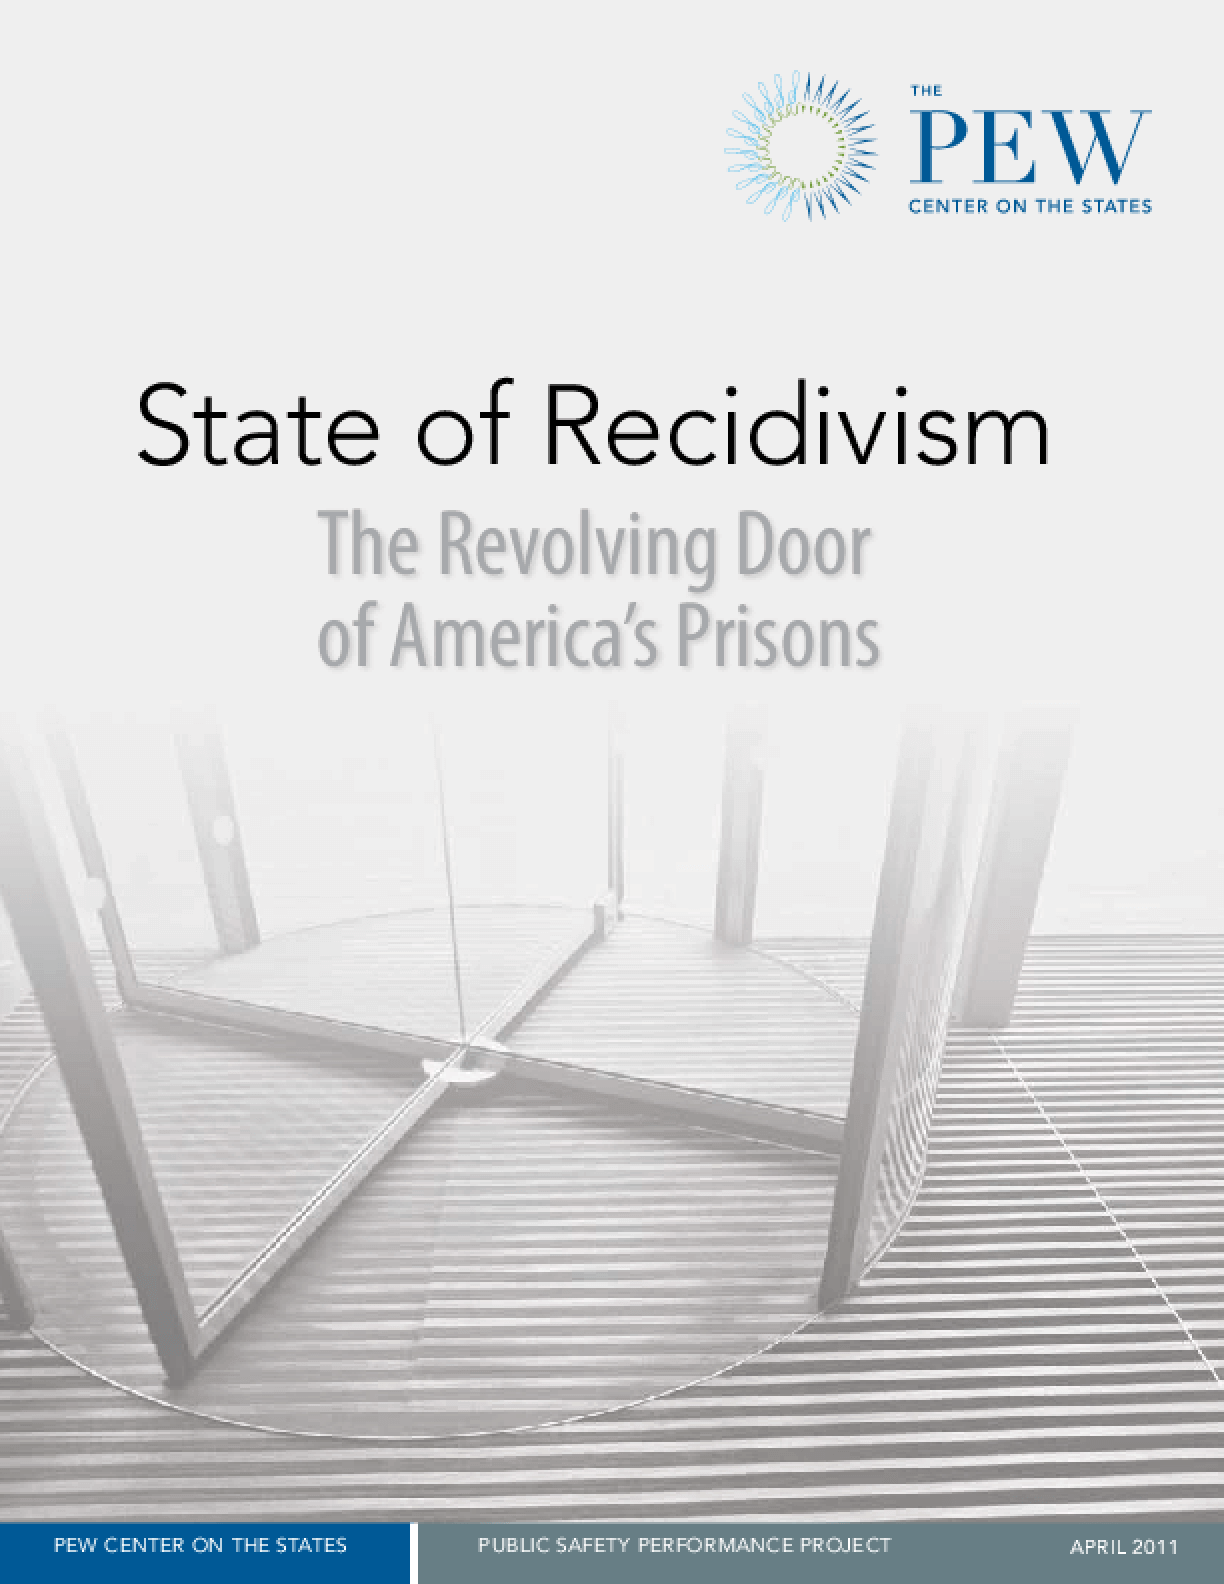 State of Recidivism: The Revolving Door of America's Prisons